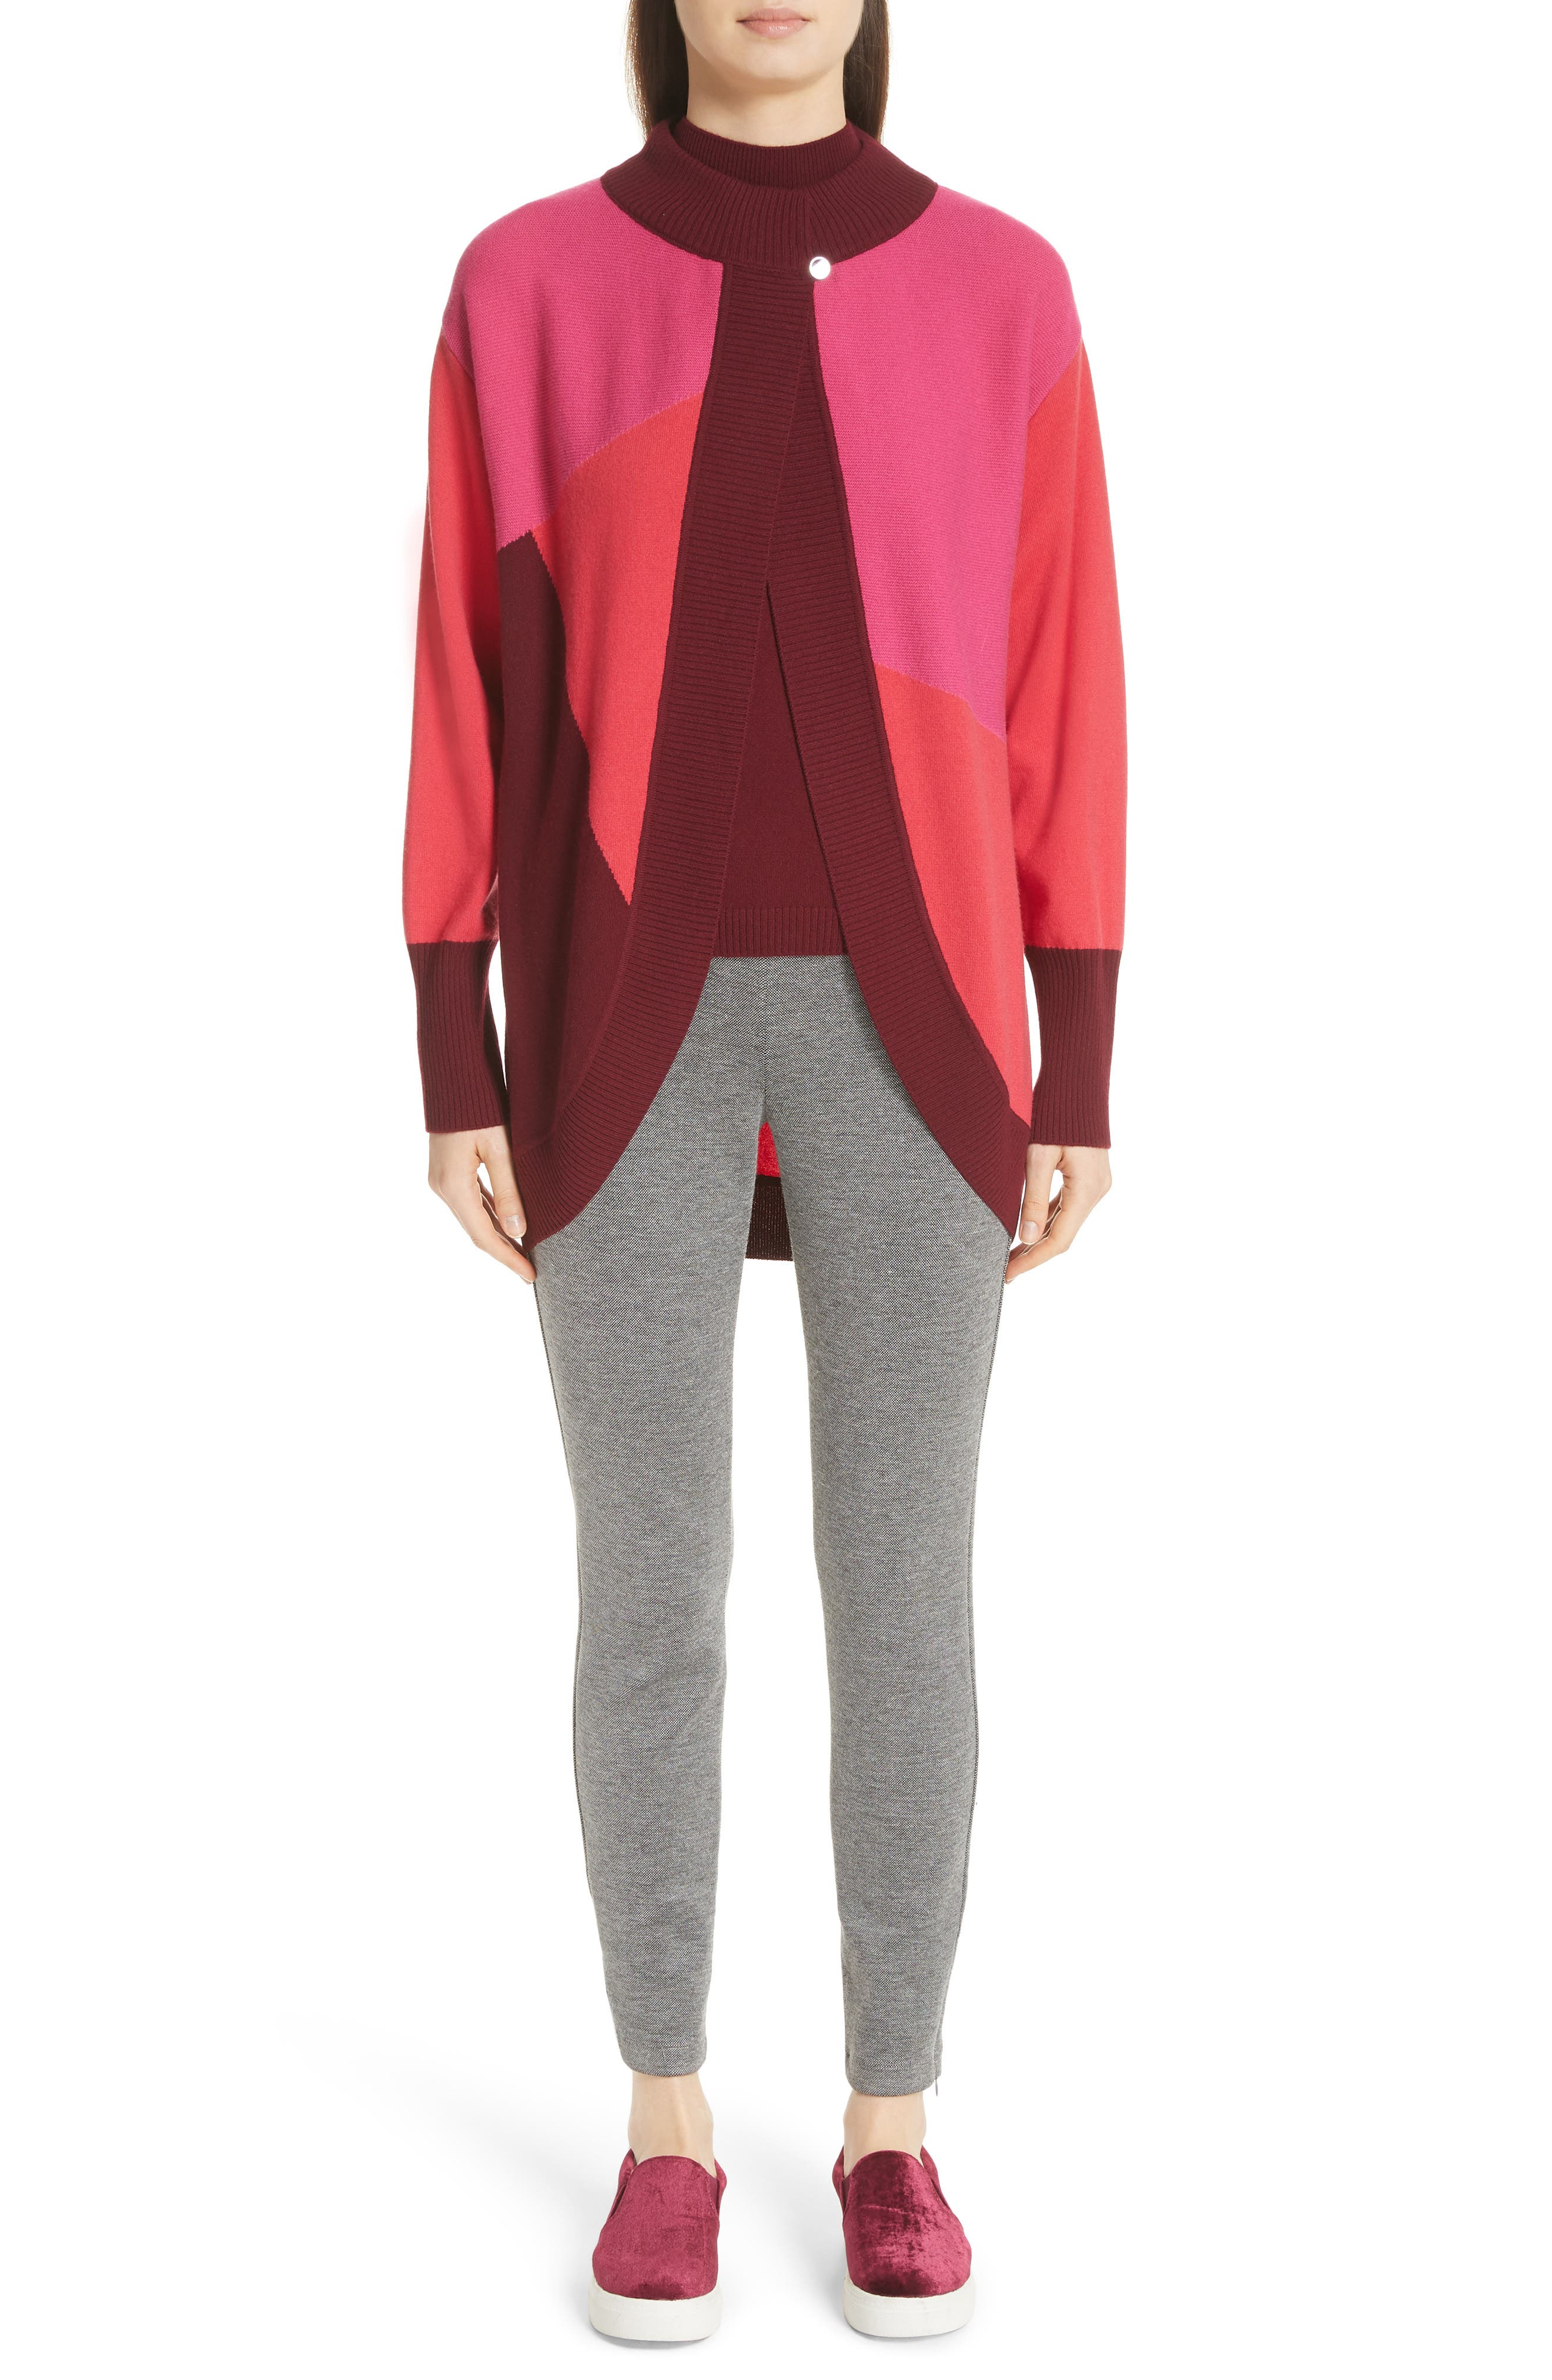 ST. JOHN COLLECTION,                             Colorblock Intarsia Knit Cardigan,                             Alternate thumbnail 7, color,                             650